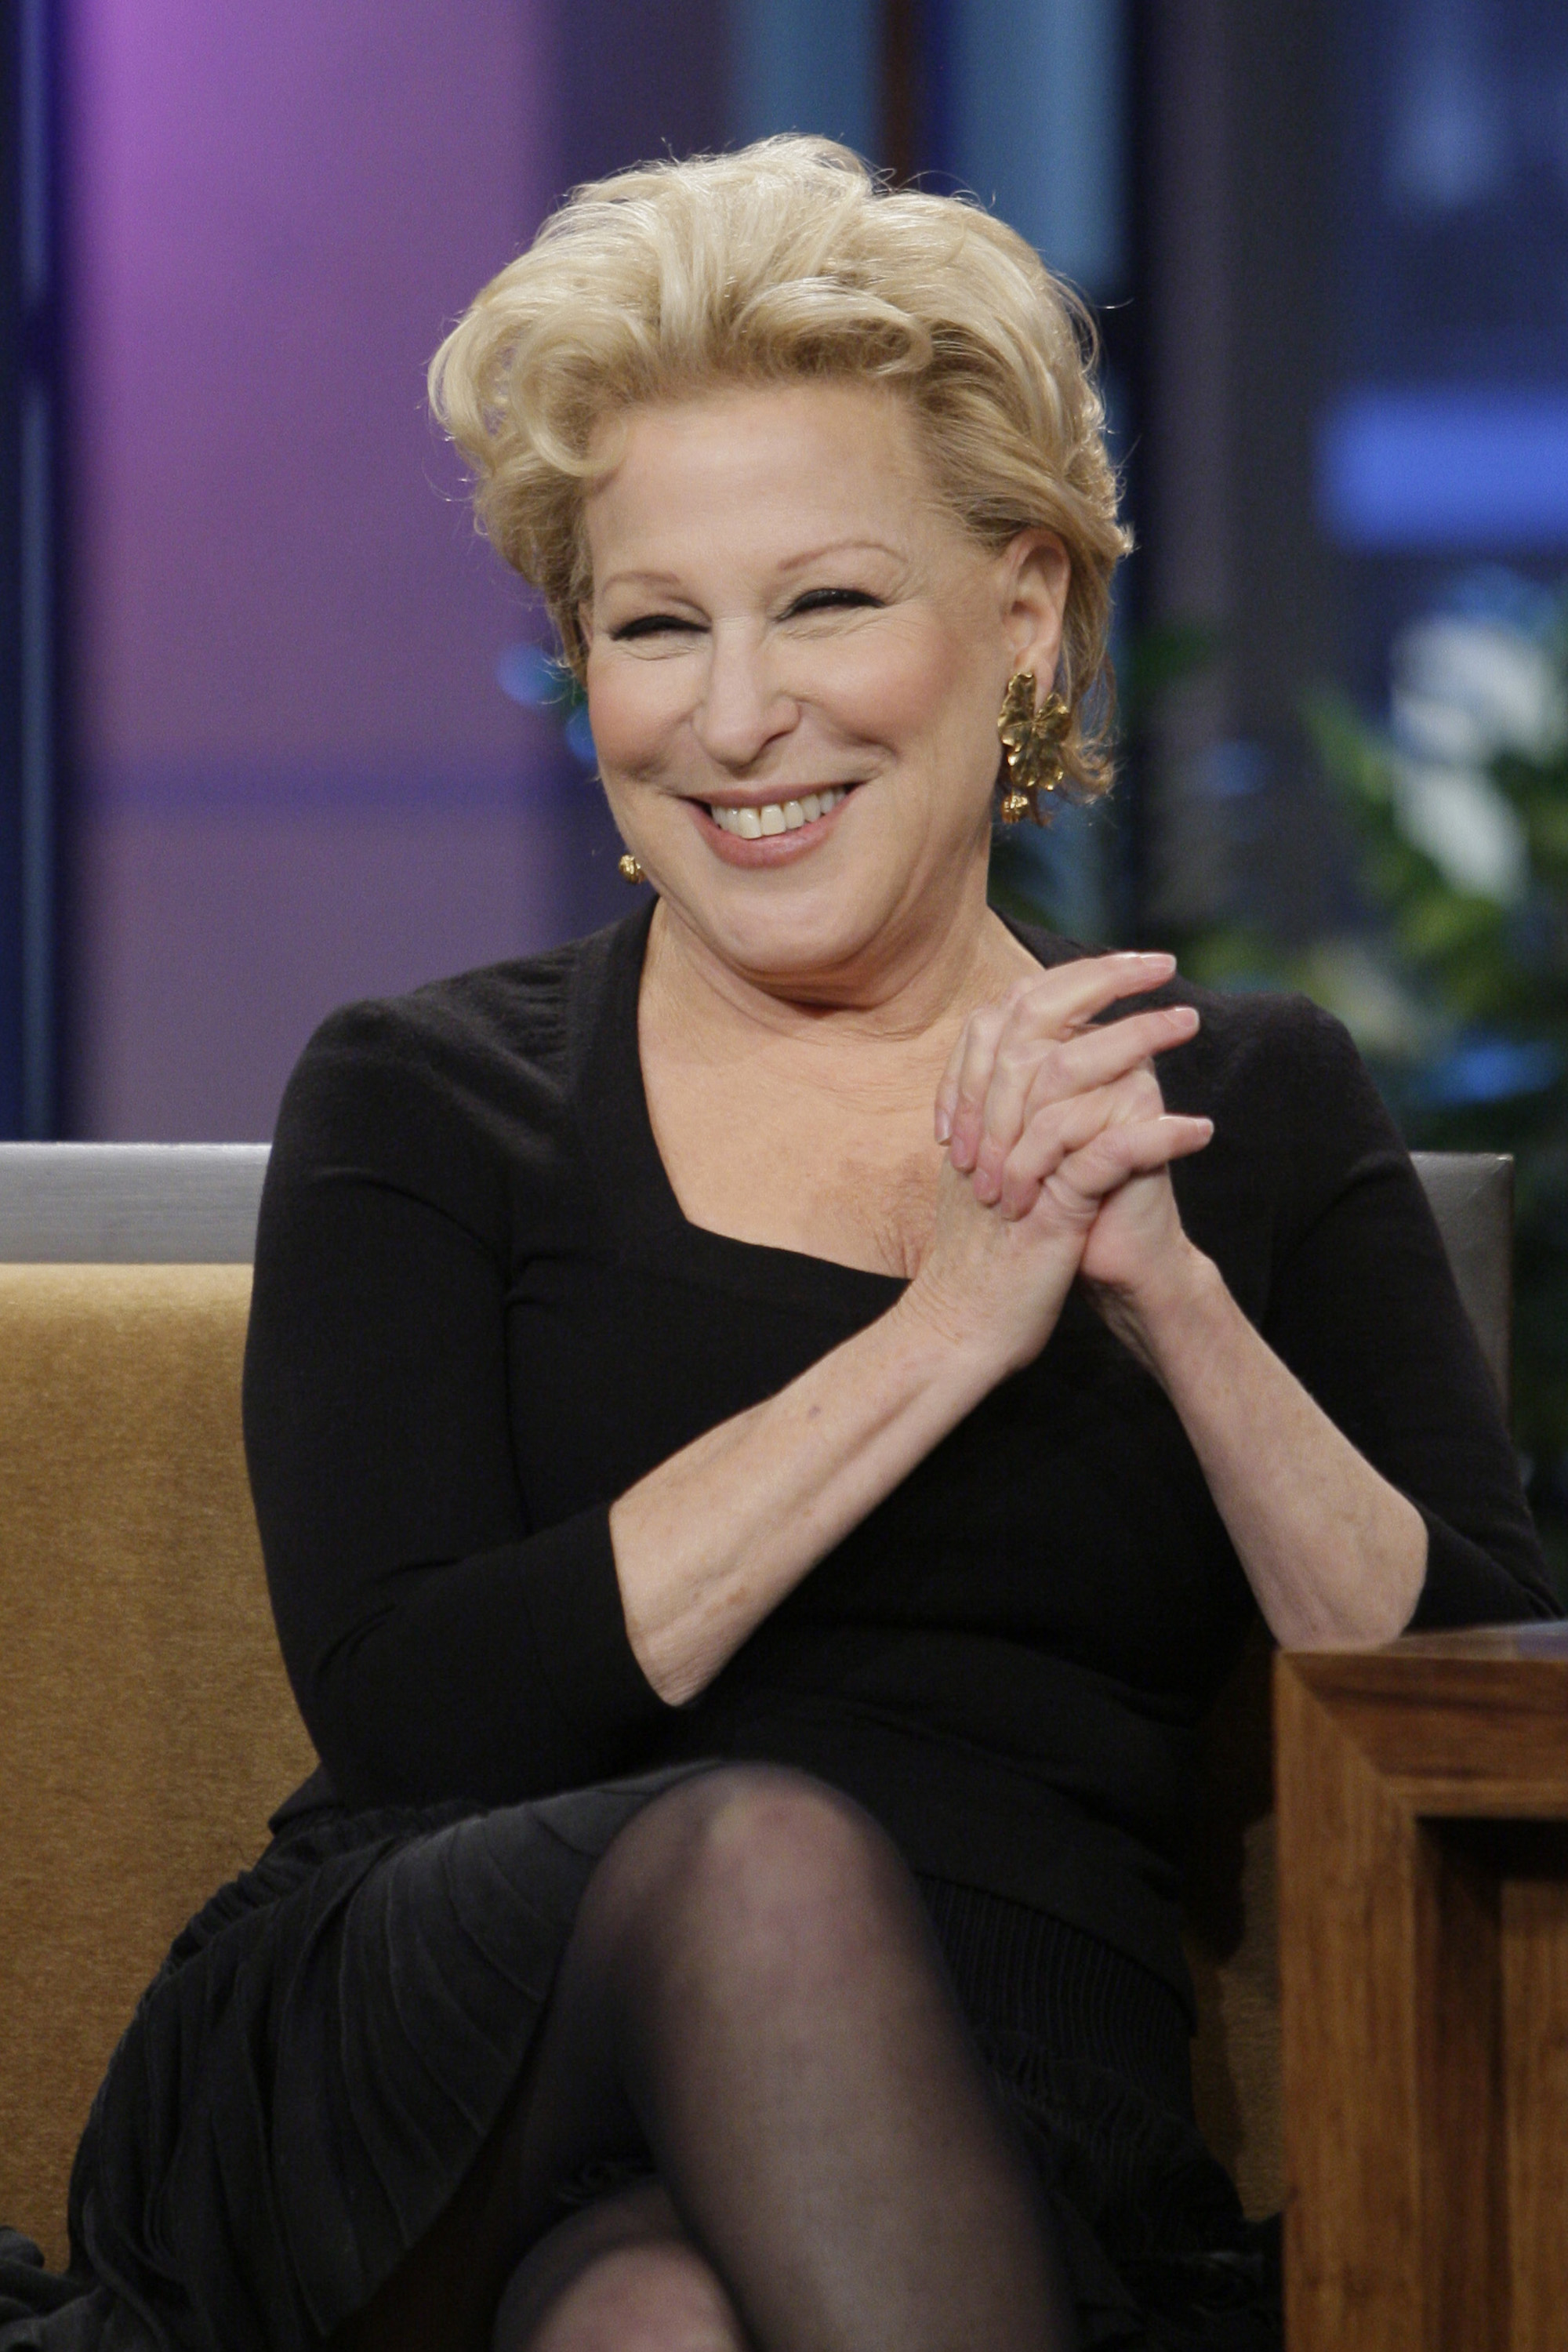 Bette Midler during an interview on November 25, 2013.